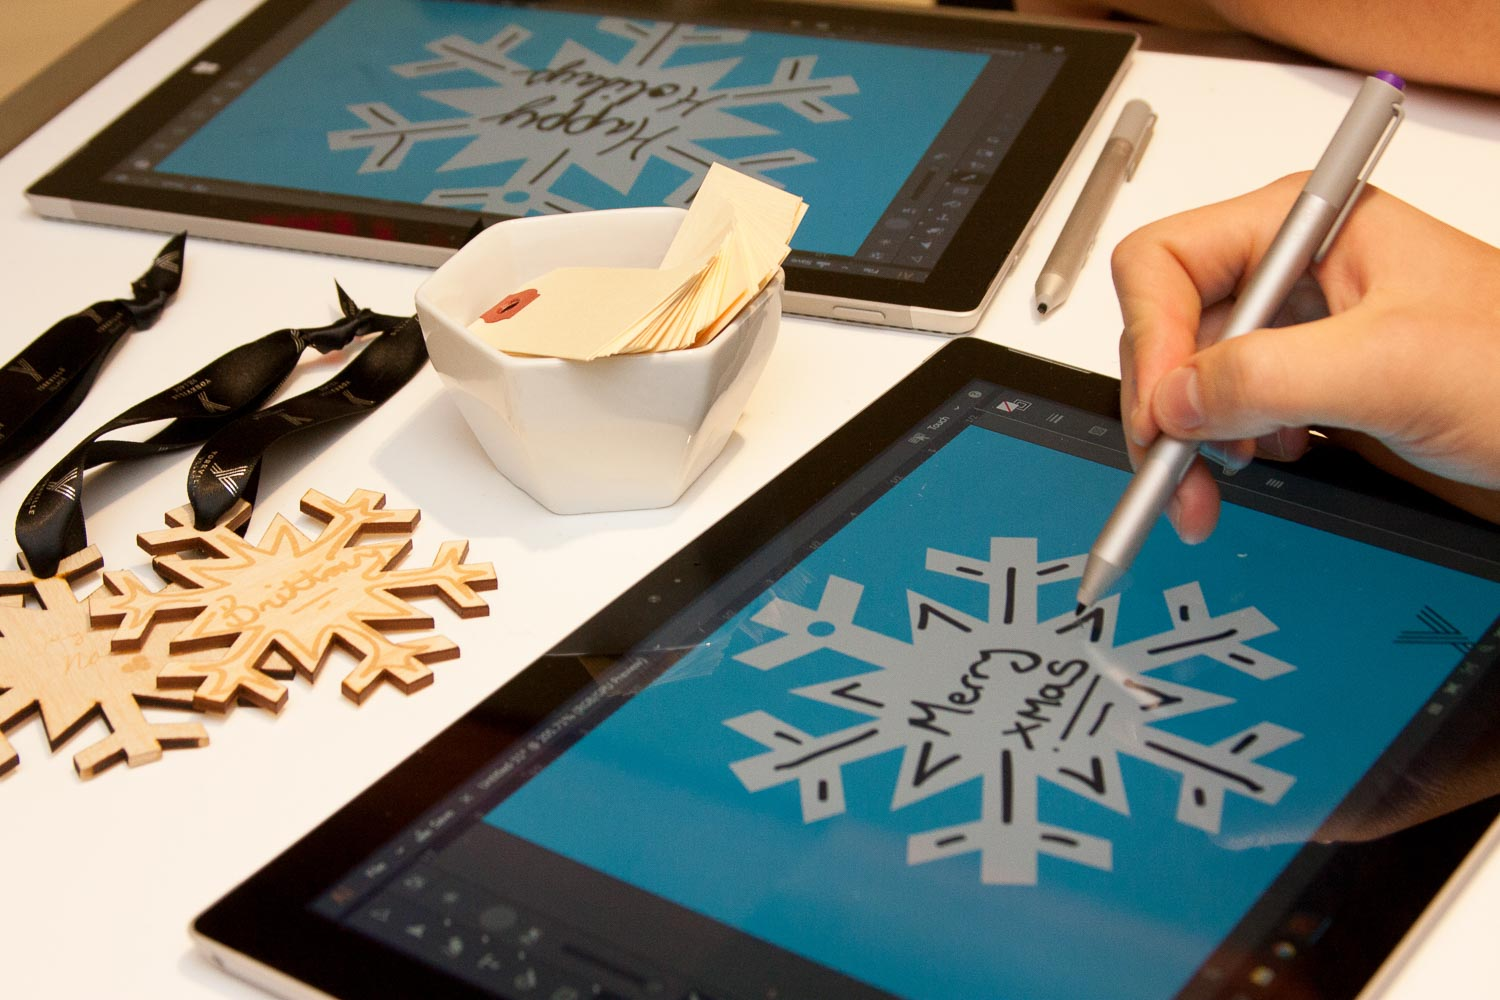 Tool:  Design Tablets